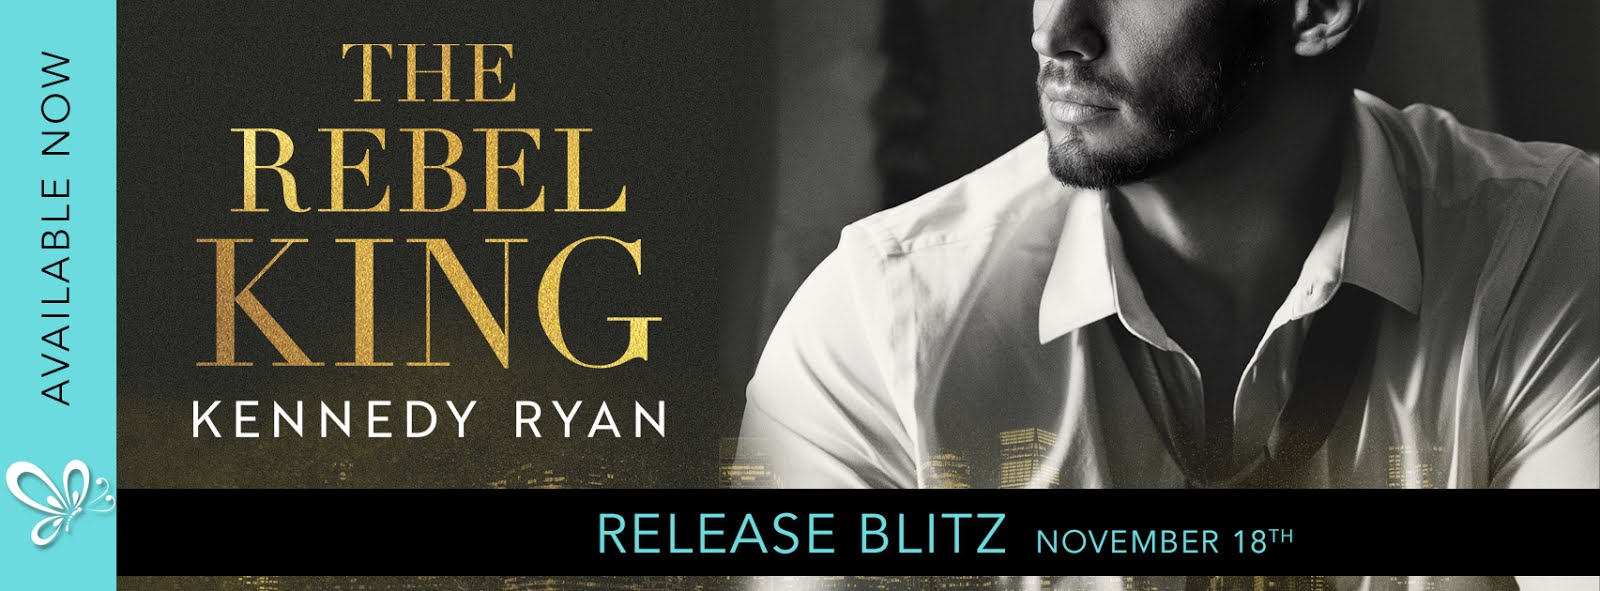 The Rebel King Release Blitz